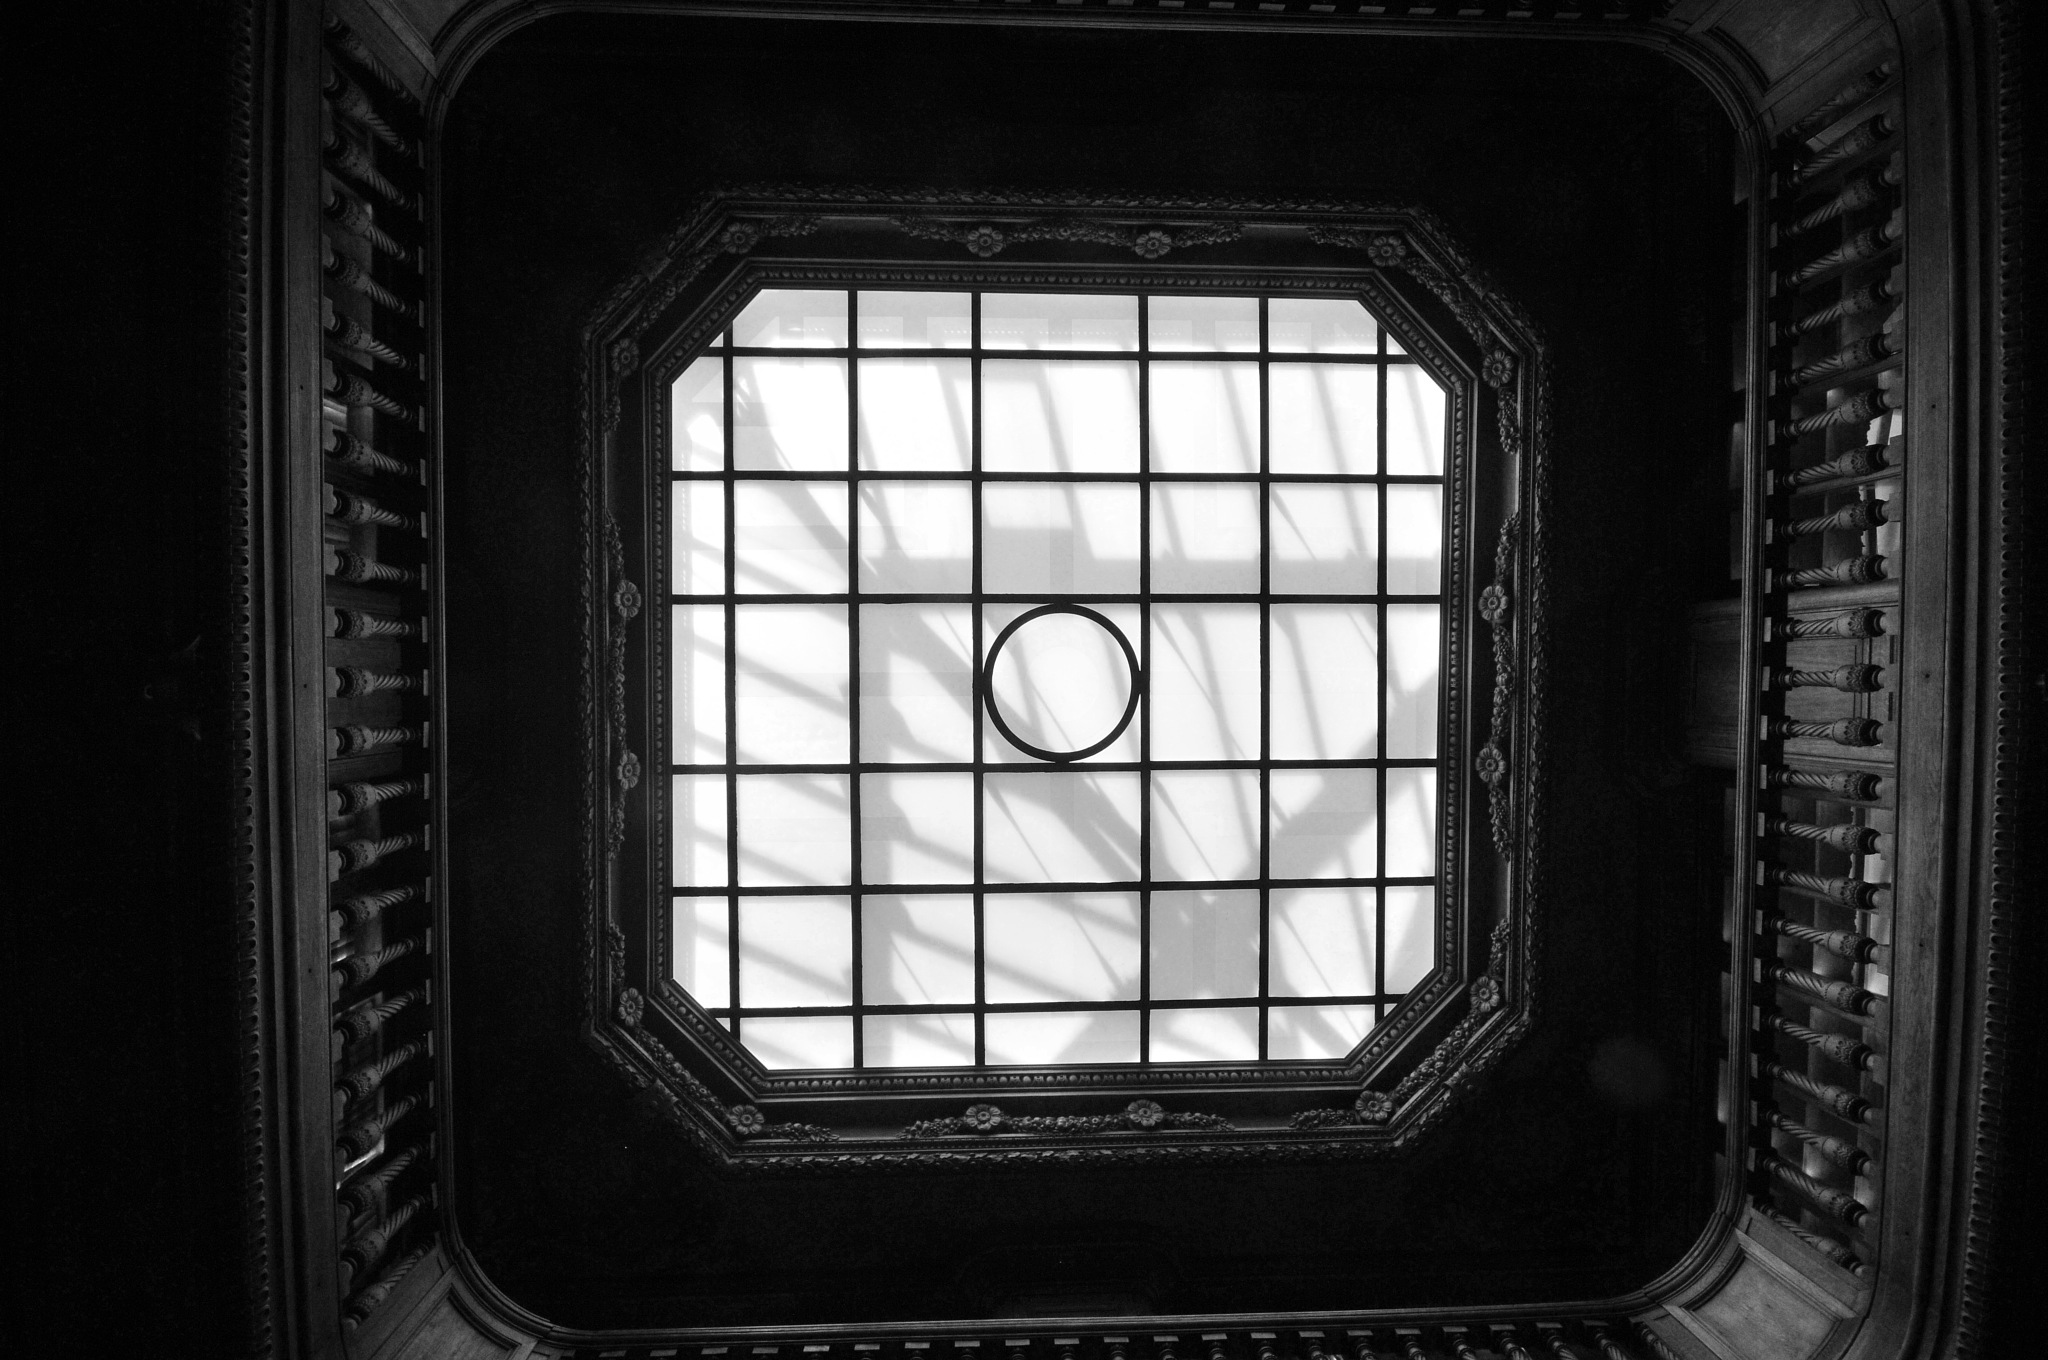 Looking up again... by JeanGregoireMarin